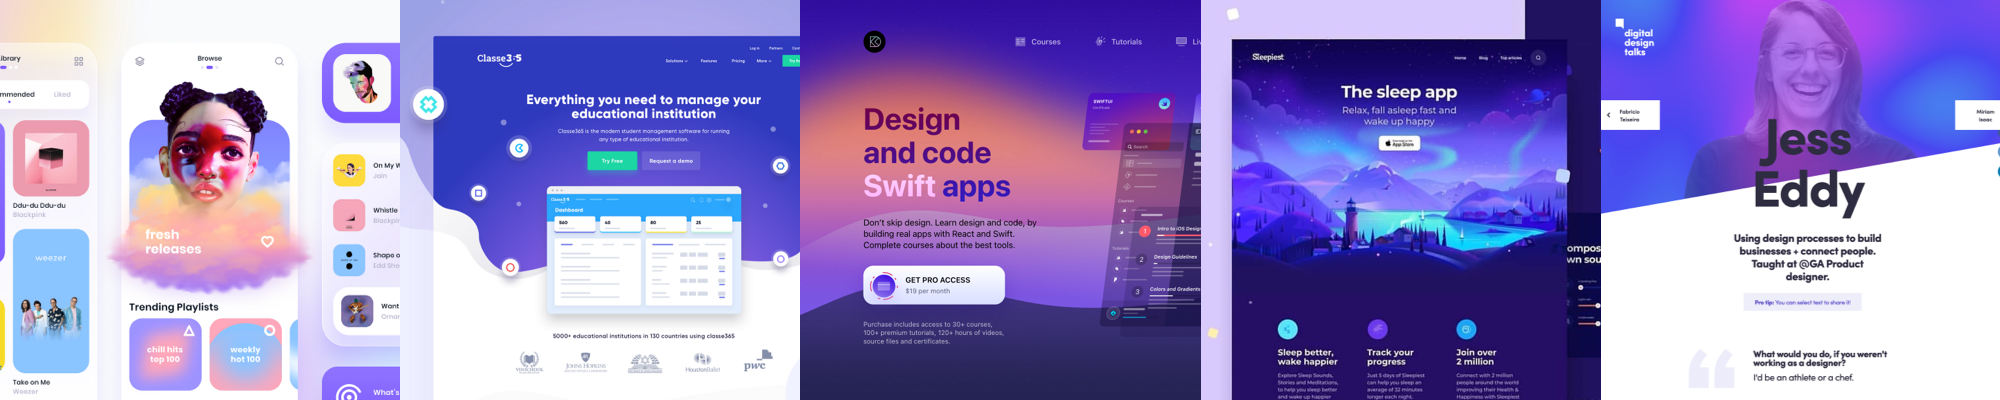 Examples of vivid colors in UI